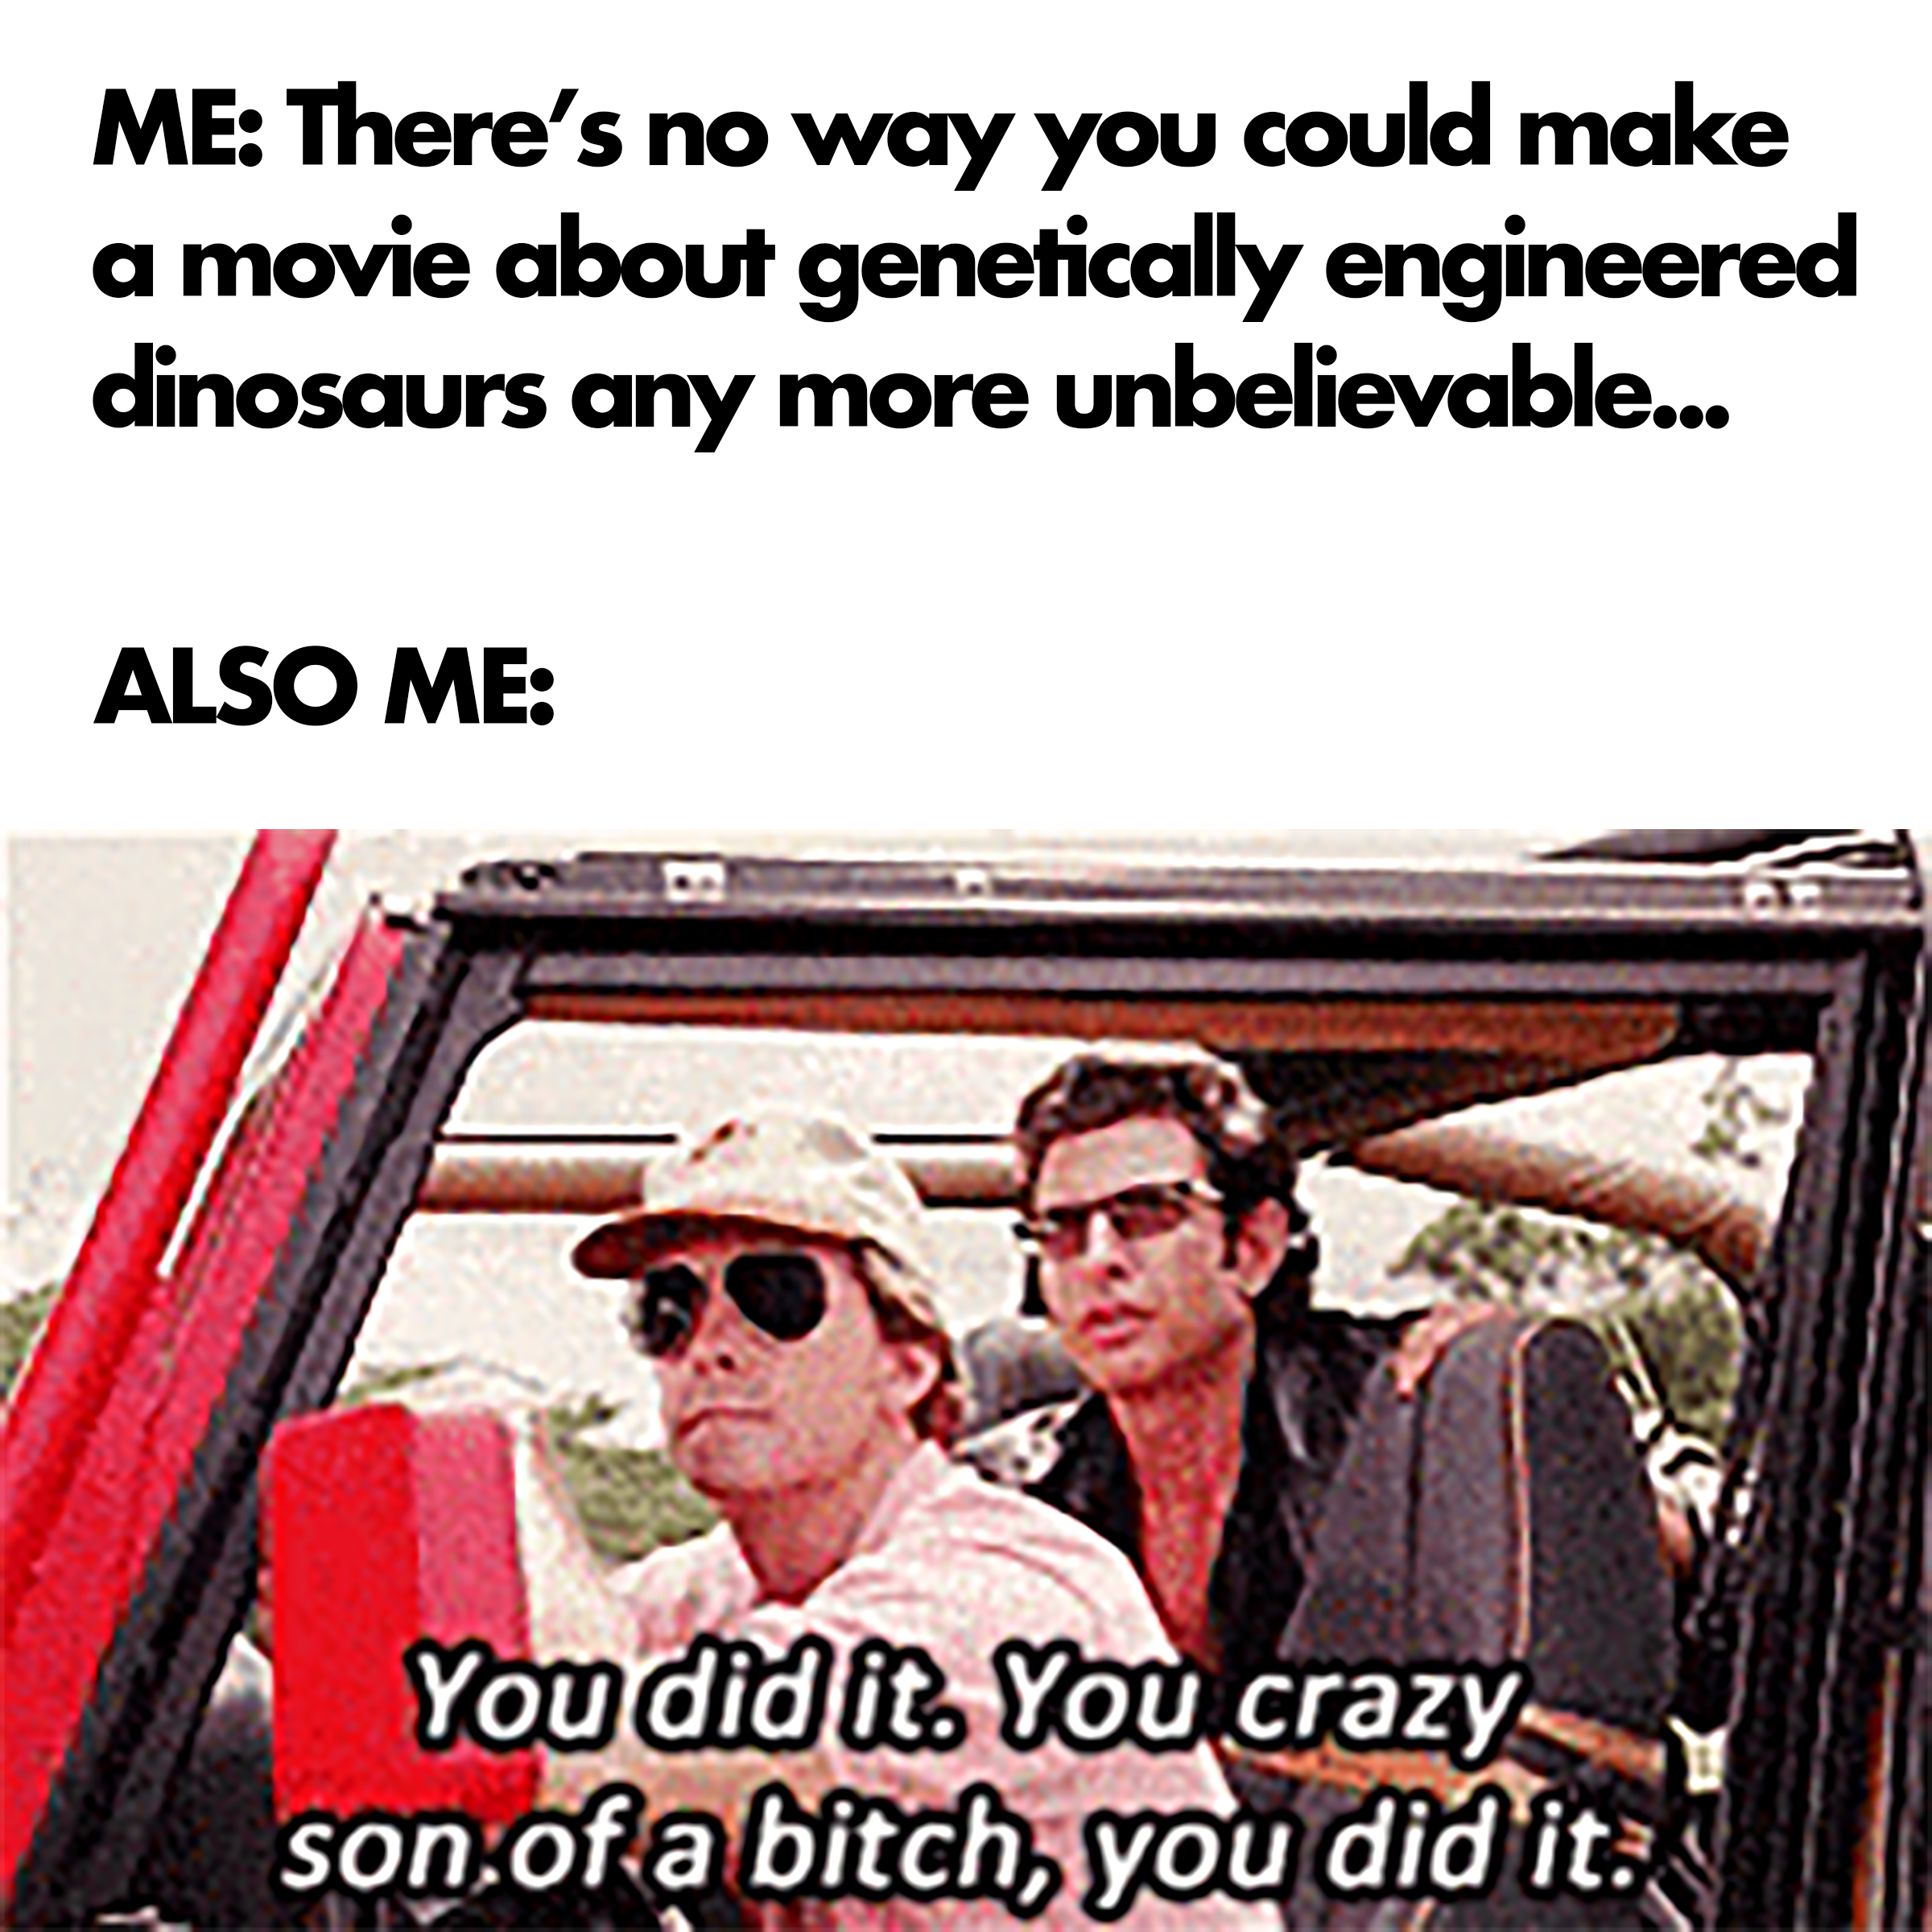 I made a meme for how I feel about Jurassic World: Fallen Kingdom